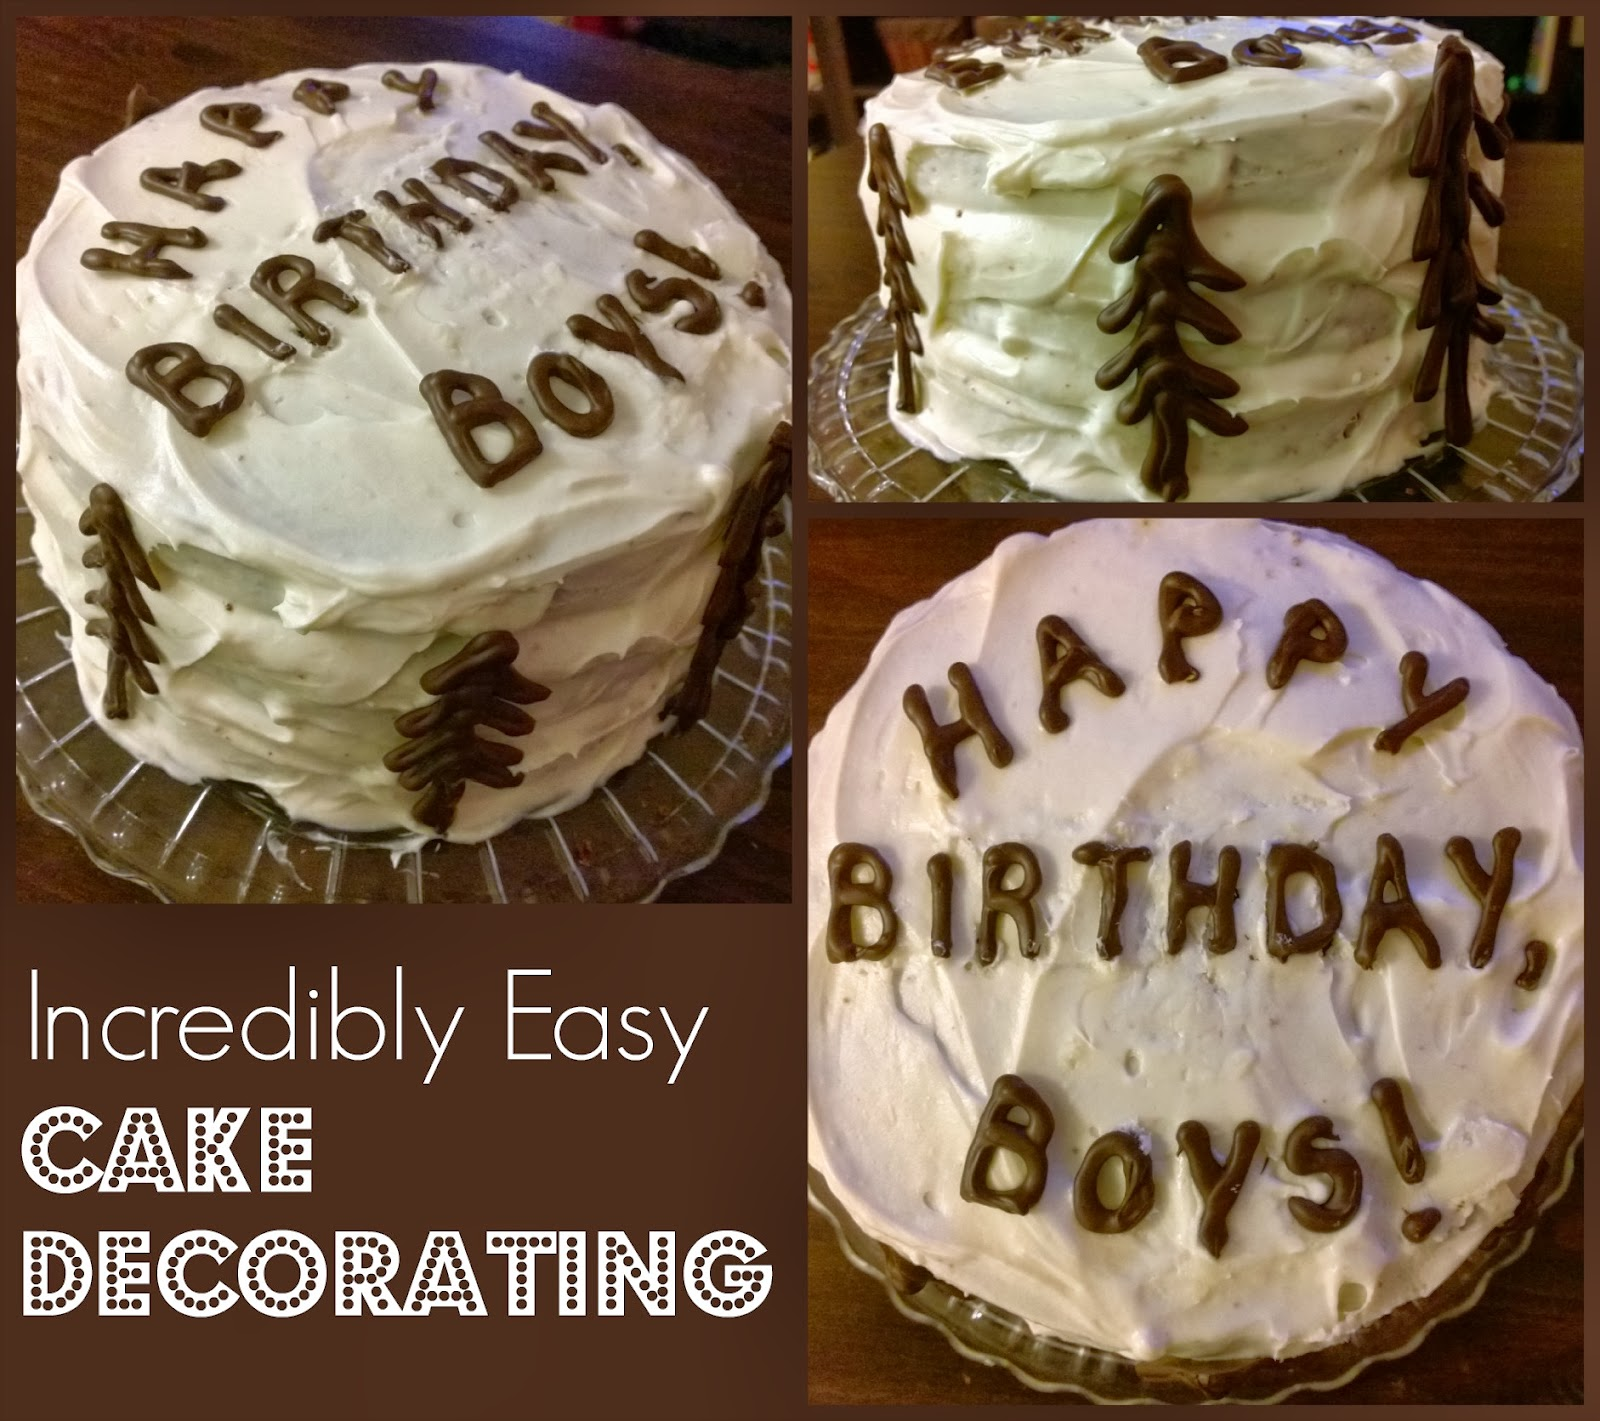 Cake Decorating Melted Chocolate : . You Pinspire Me .: Creative Easy Cake Decorating